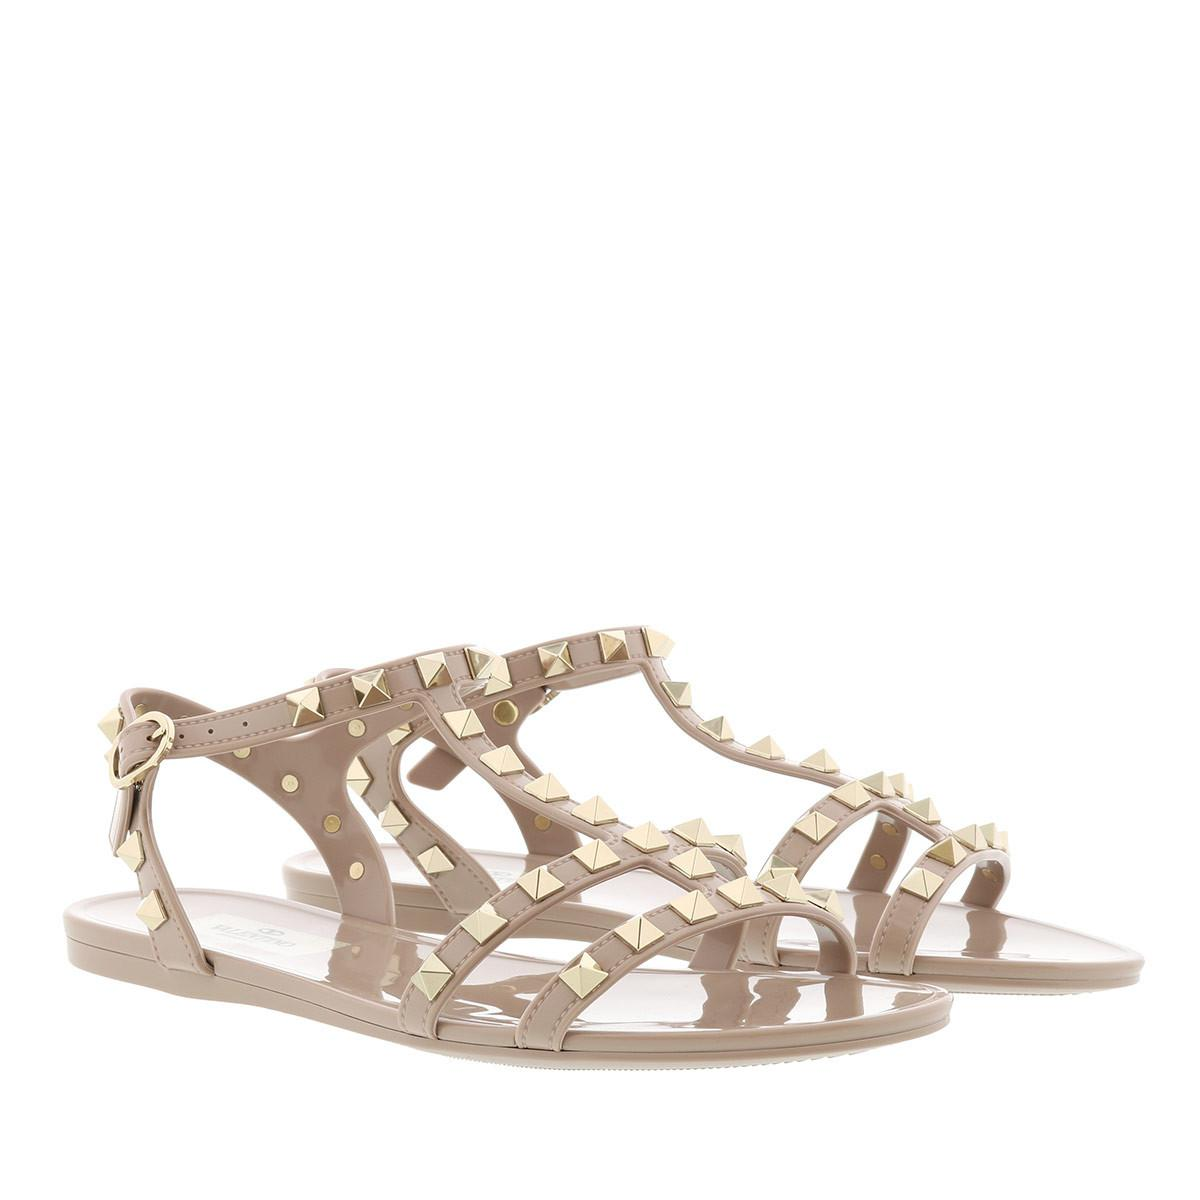 be6411a6d15b75 Valentino Rockstud Flat Sandals Soft Pvc Poudre in Natural - Lyst